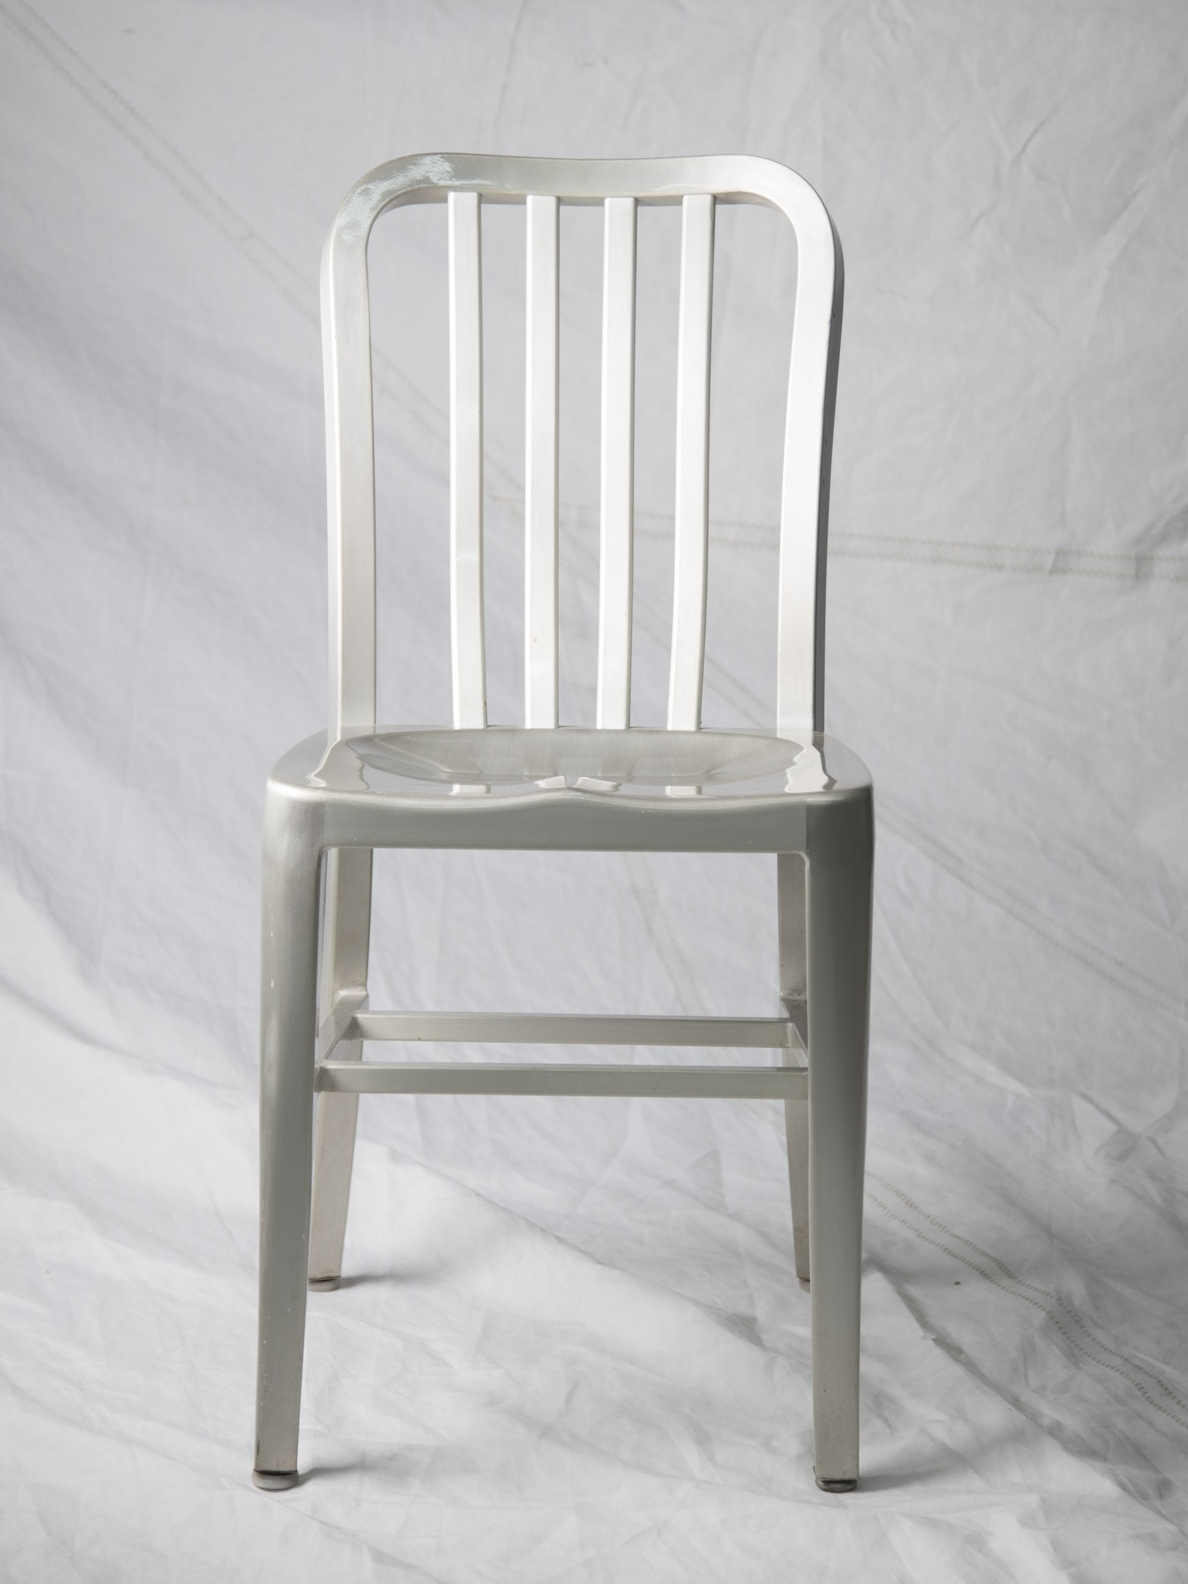 CH061  Vintage aluminum side chair  $75/week